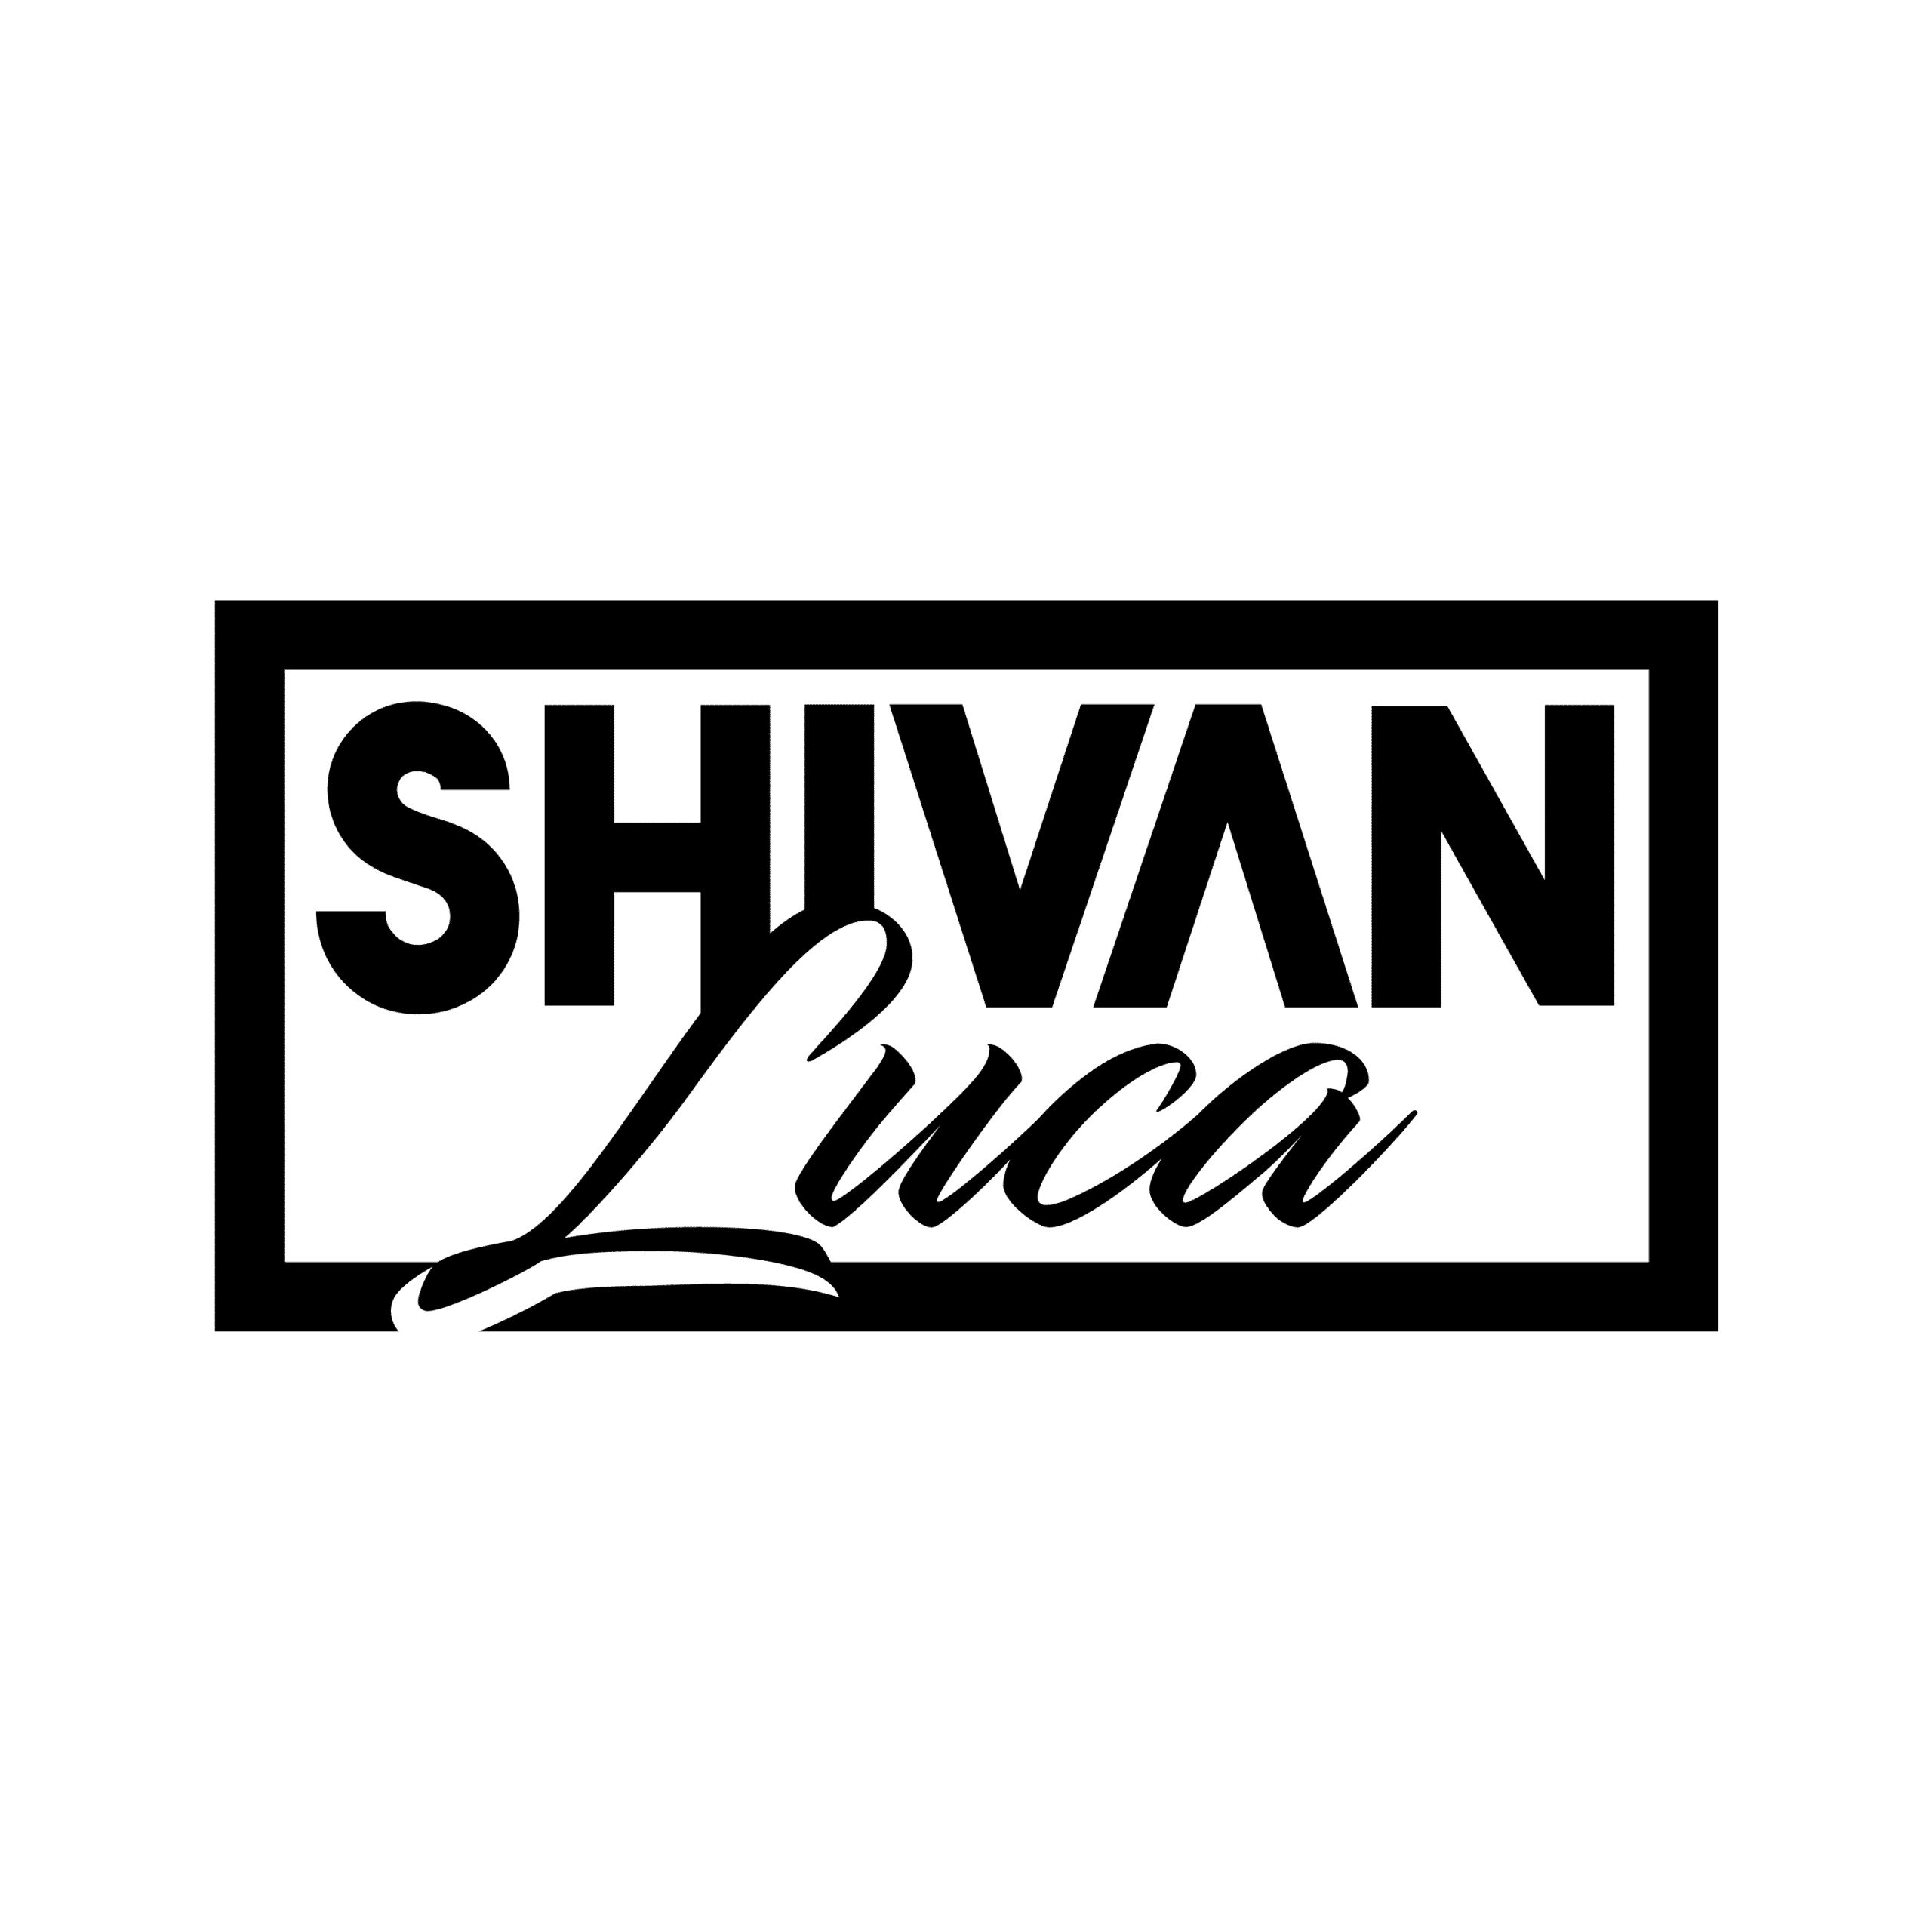 Shivan Luca Indie singer songwriter performer producer los angeles